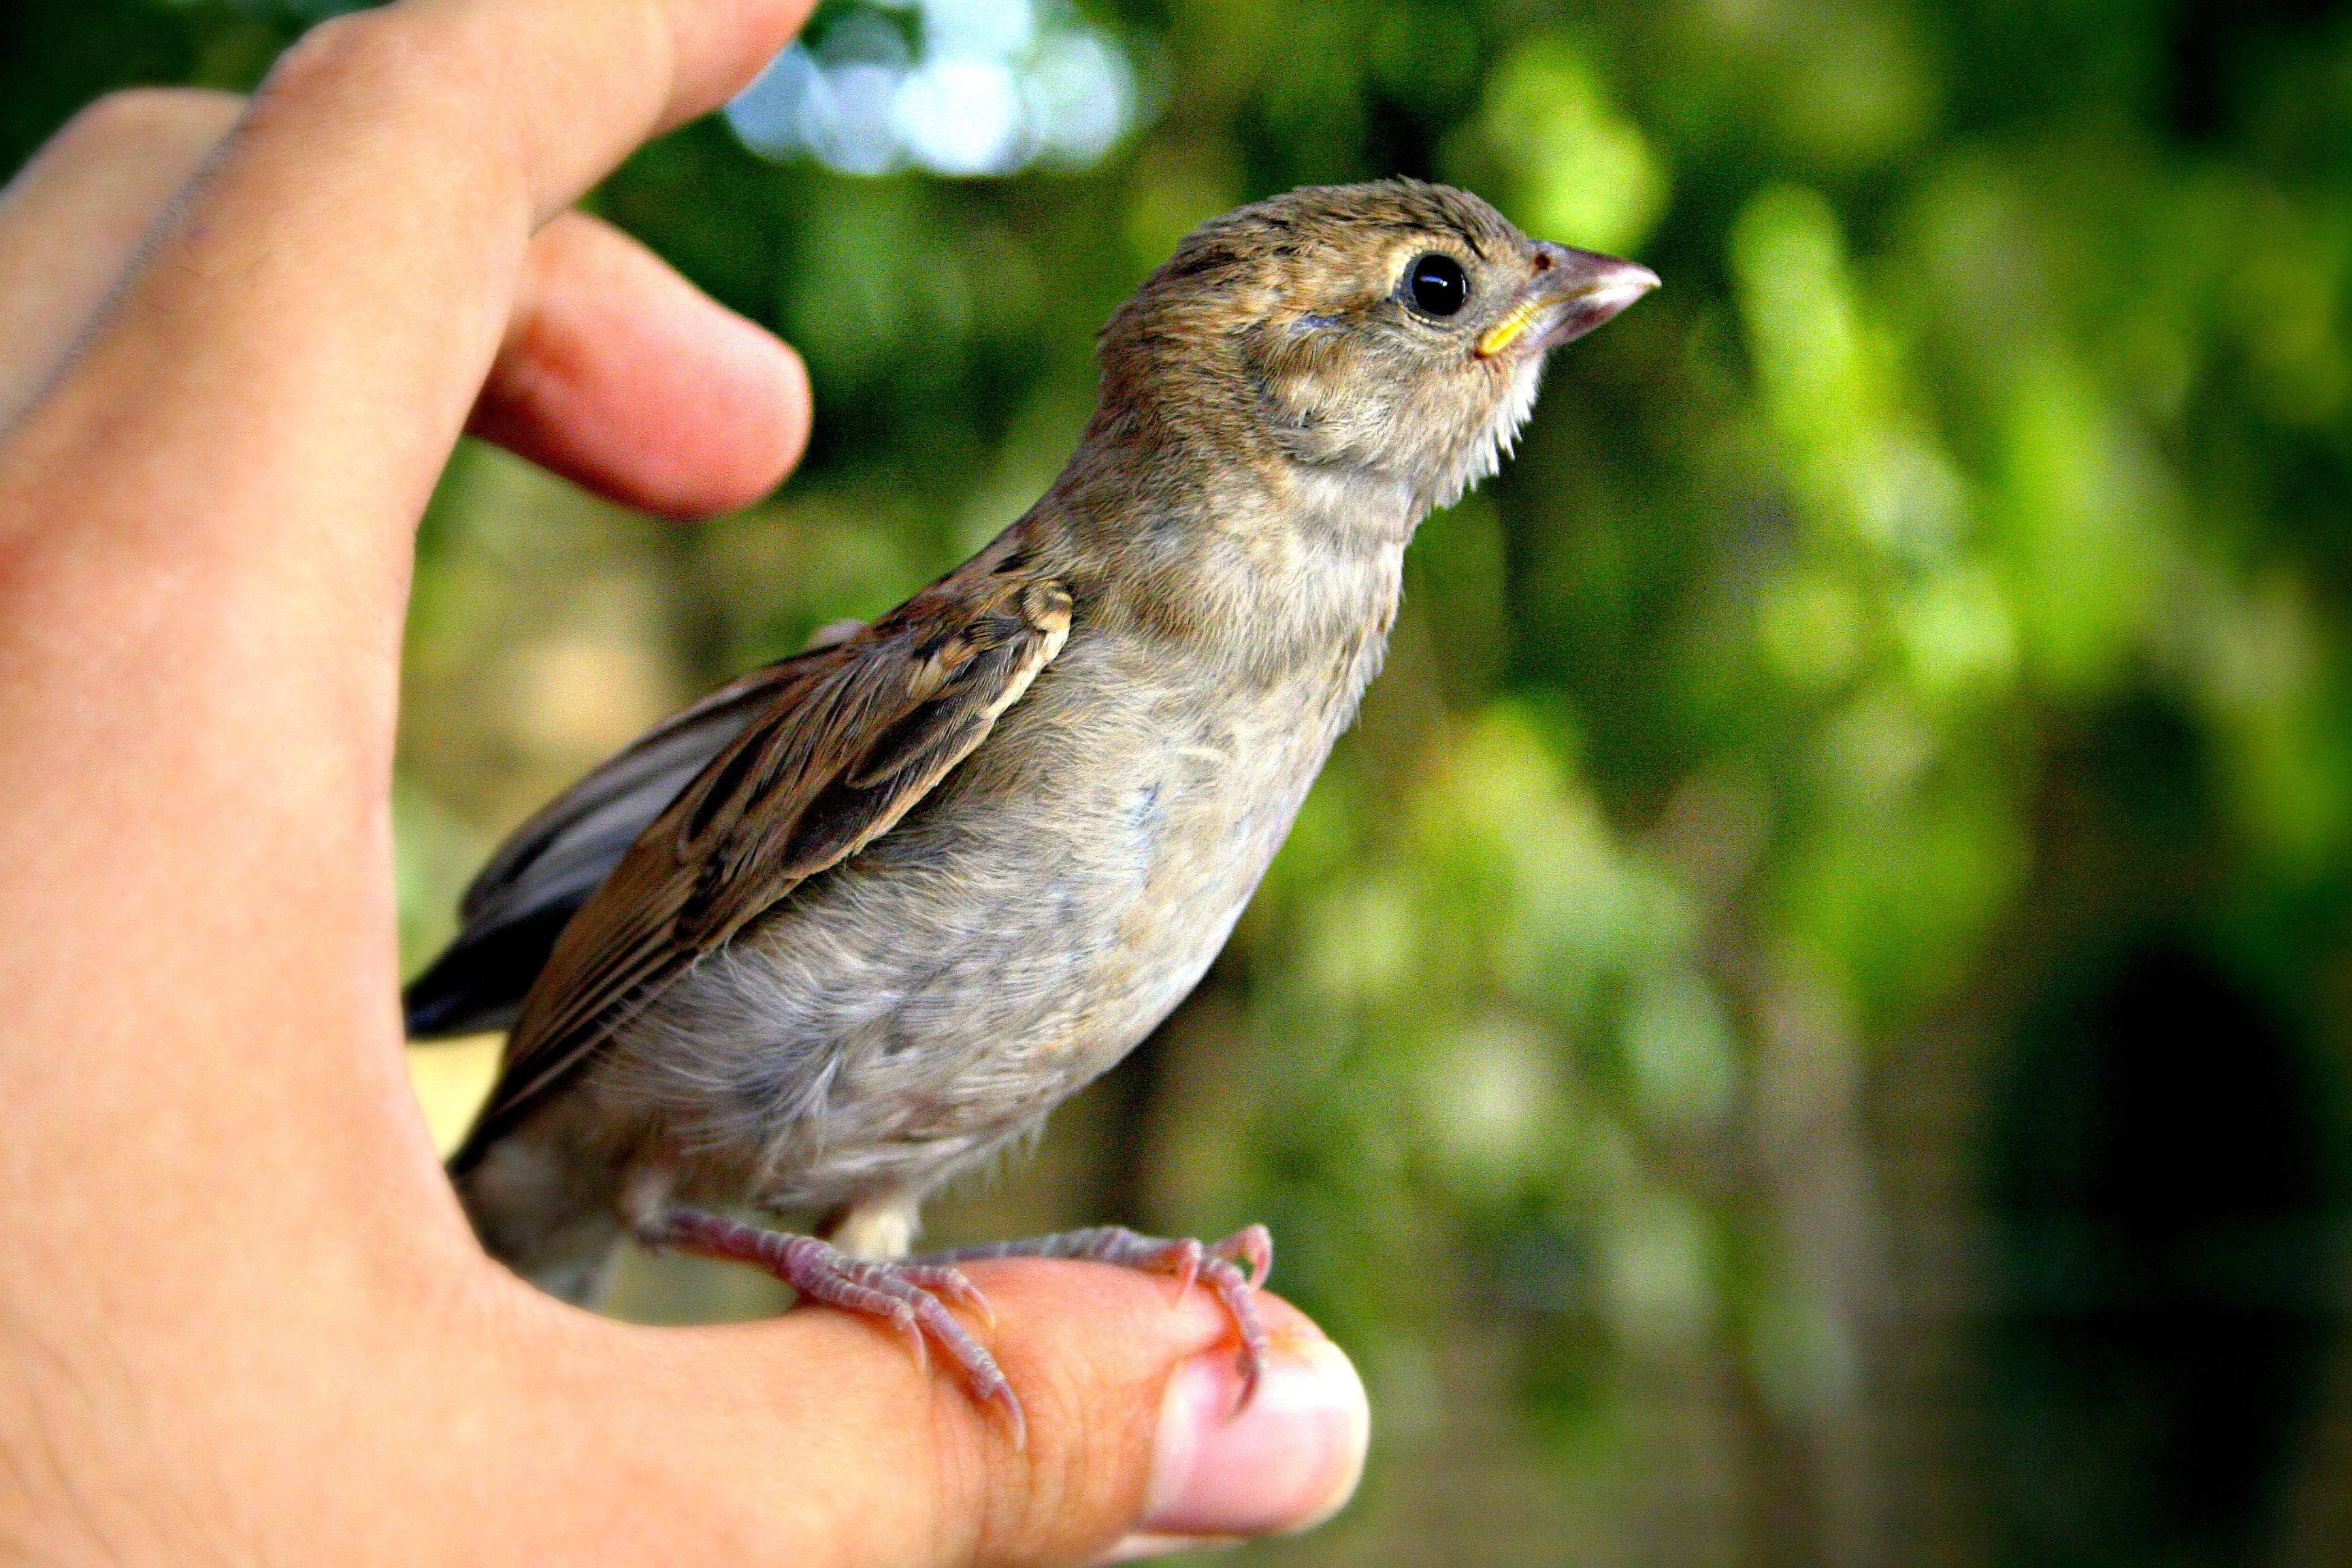 short-beak bird on person thumb